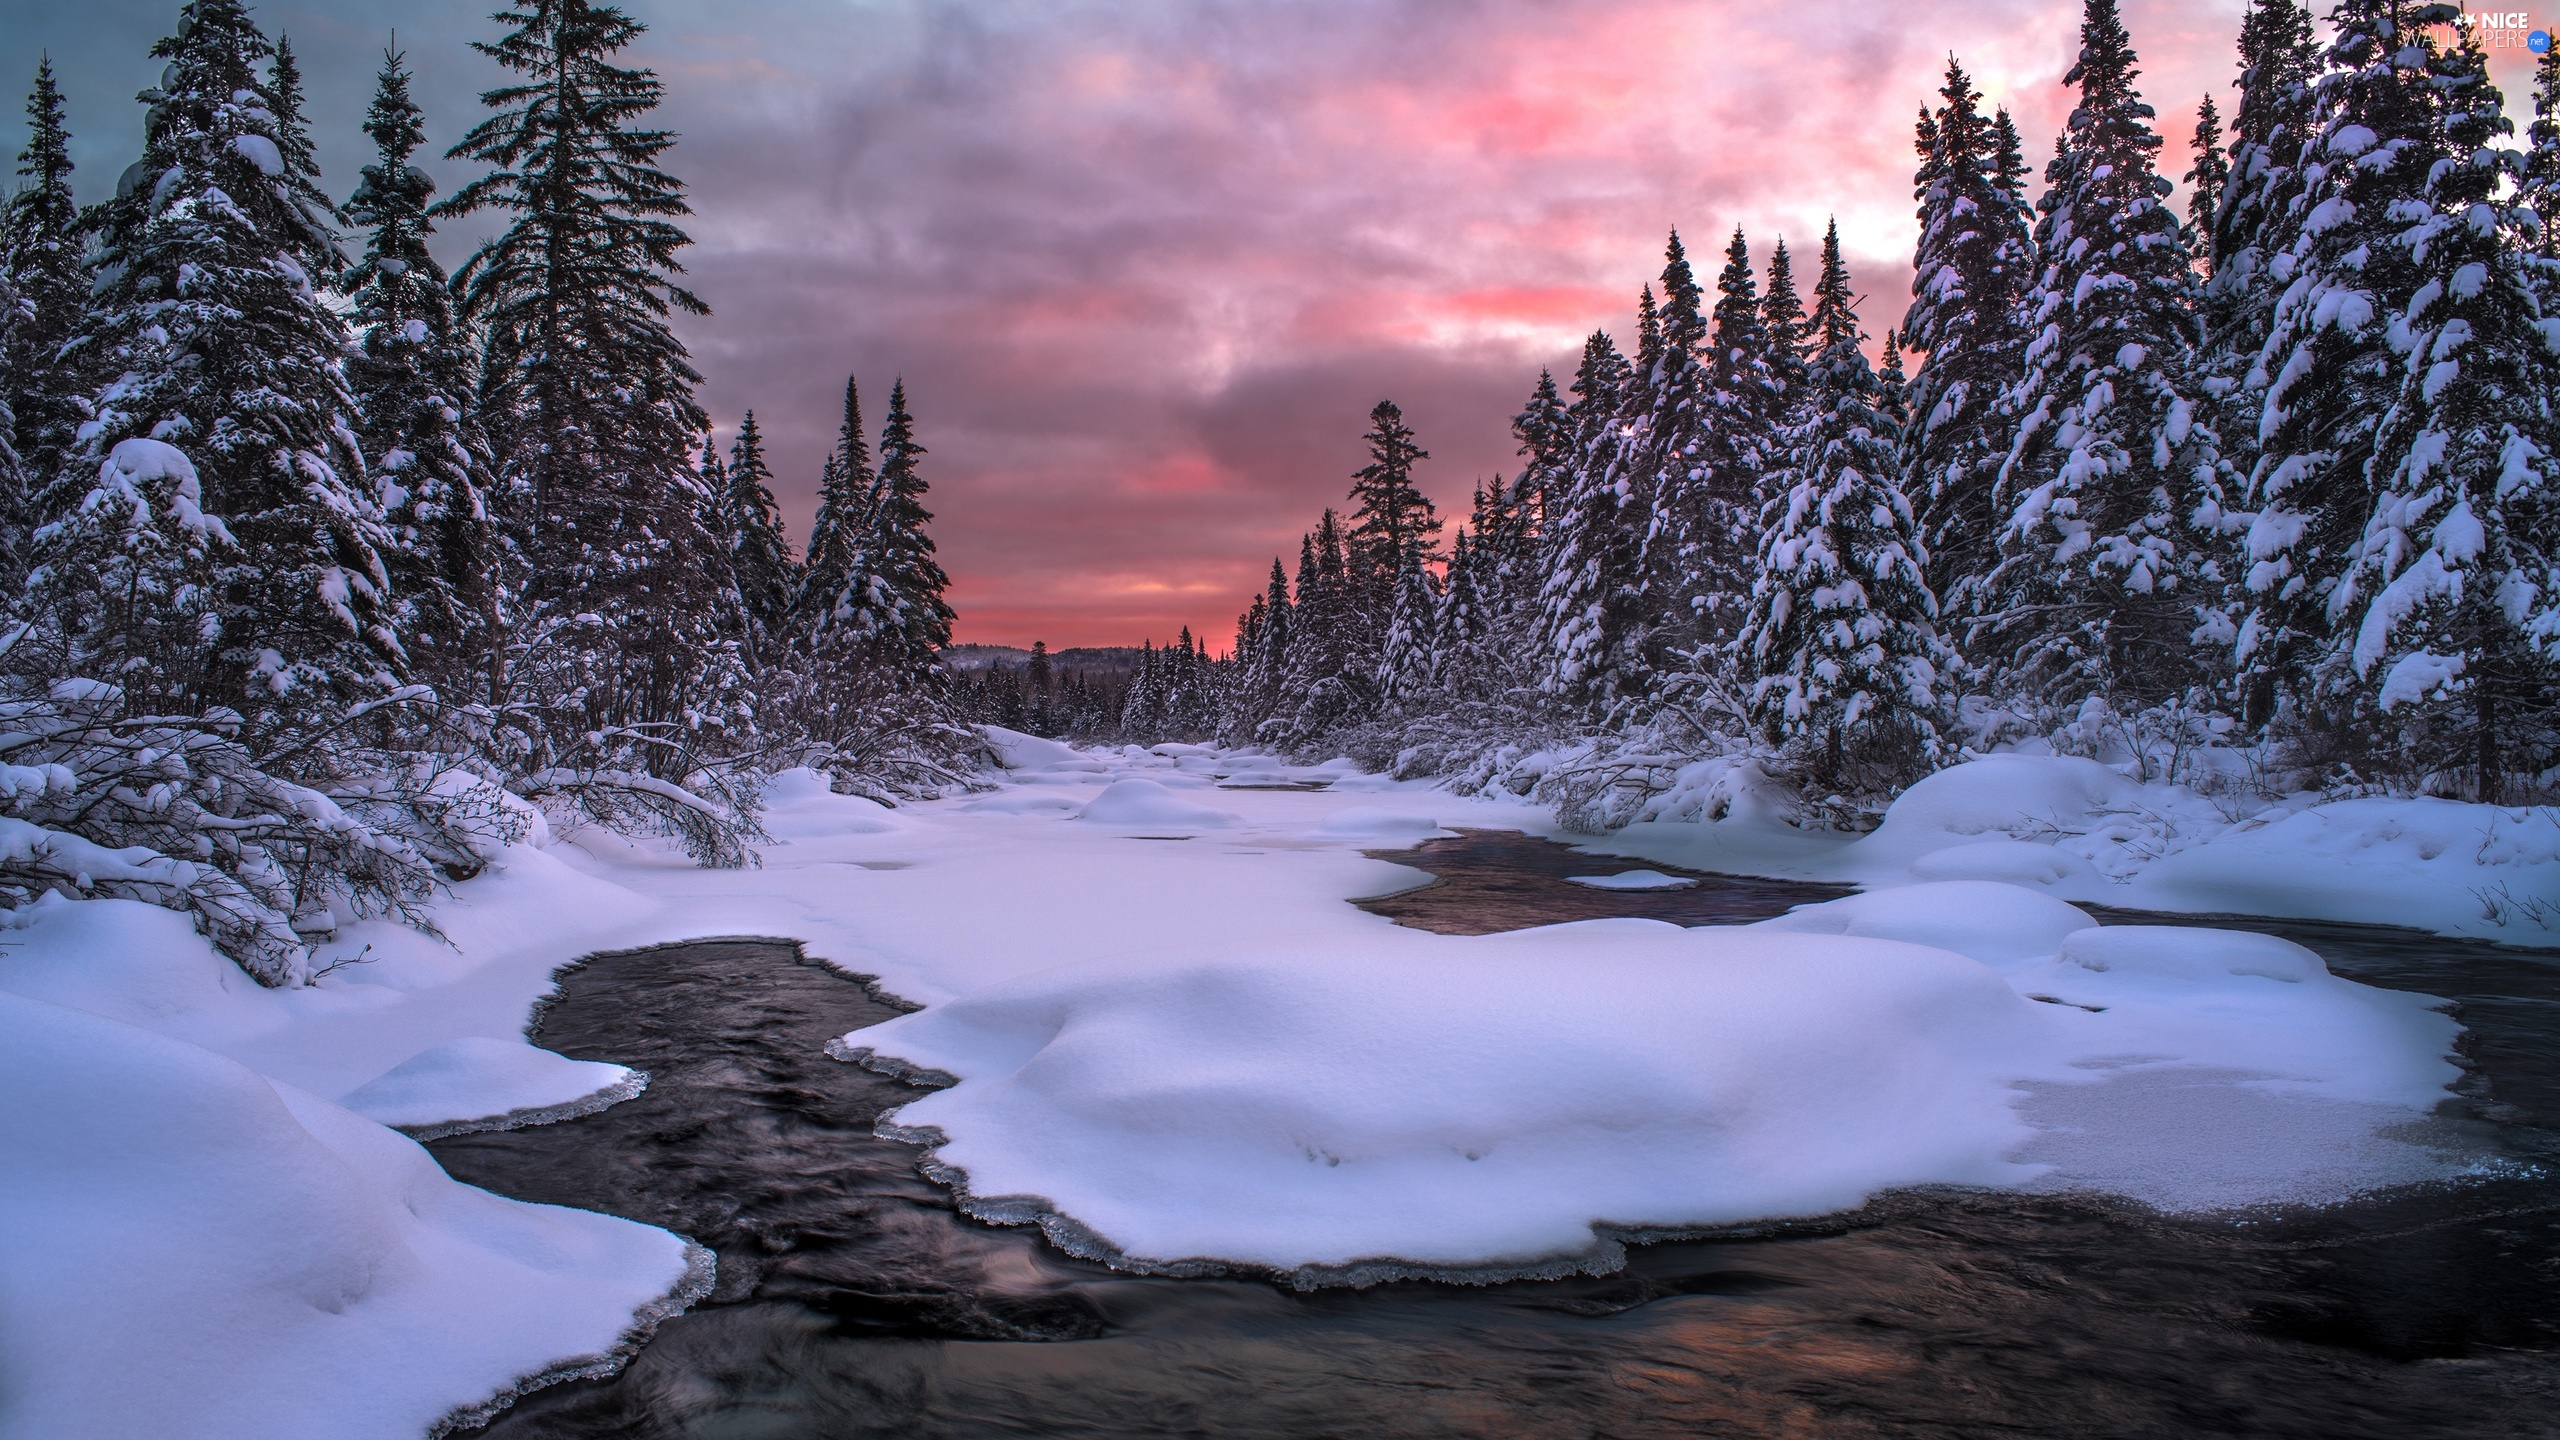 viewes, River, Spruces, trees, winter, Snowy, Great Sunsets